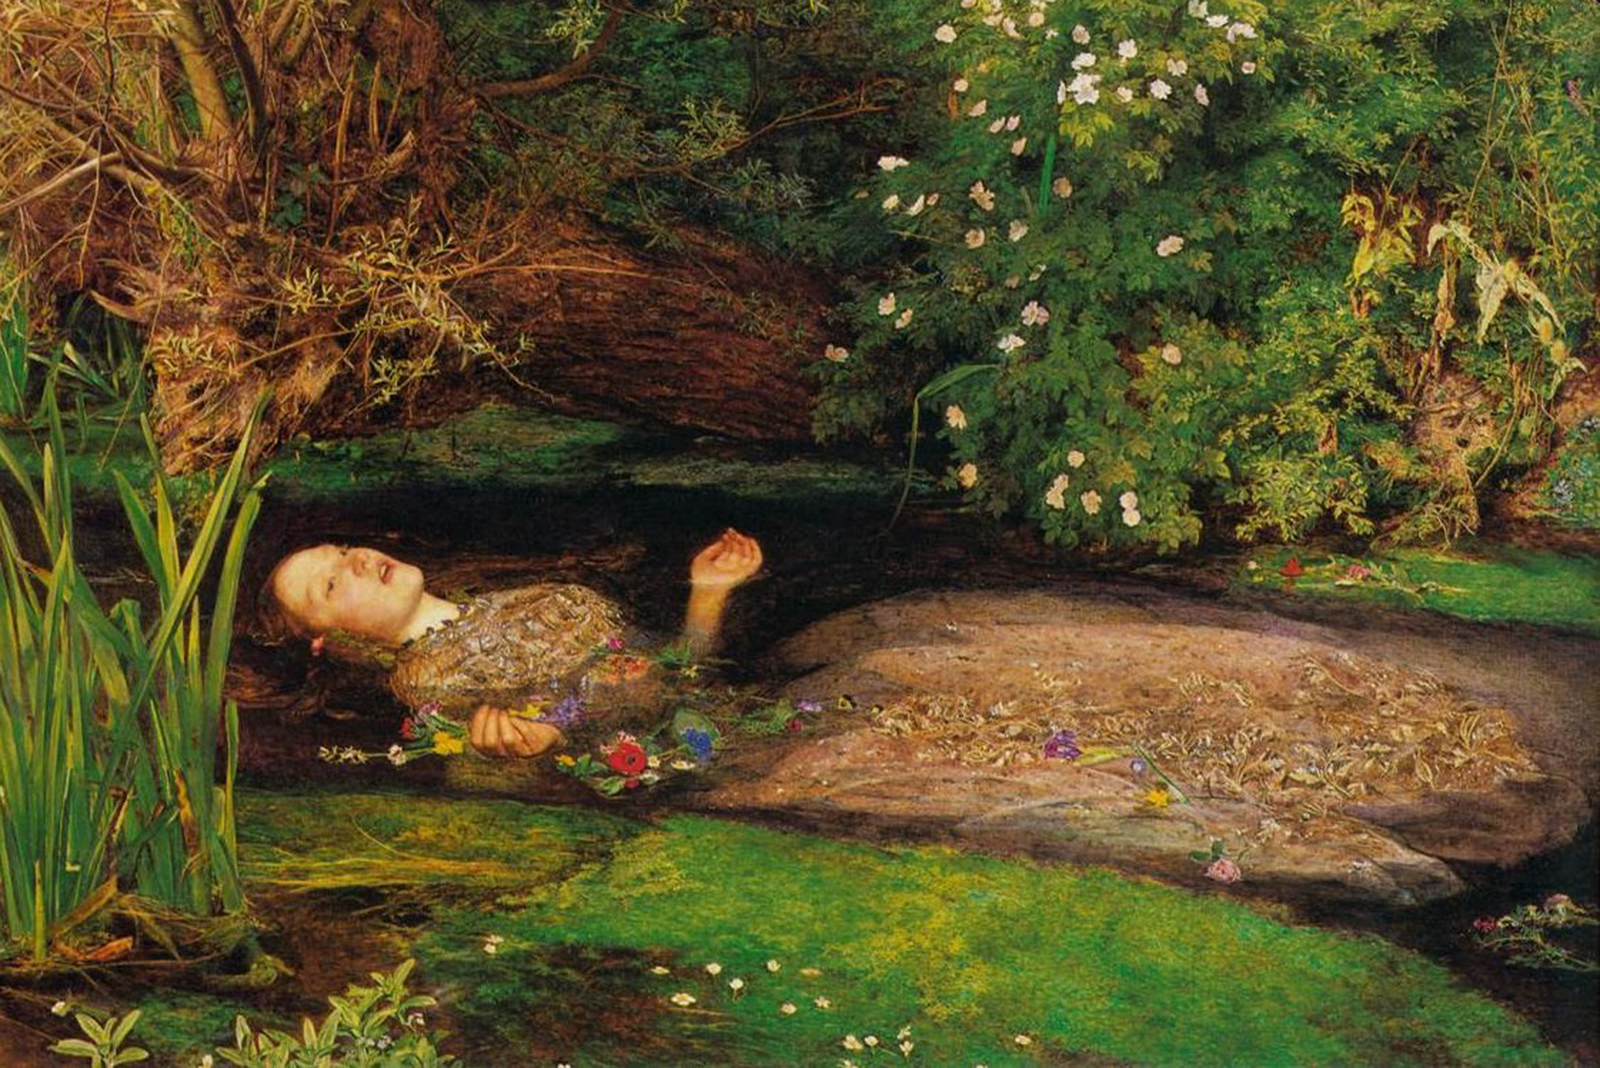 Ophelia S Adornments Blog May 2012: Art Masterpieces Of The Ages: Ophelia